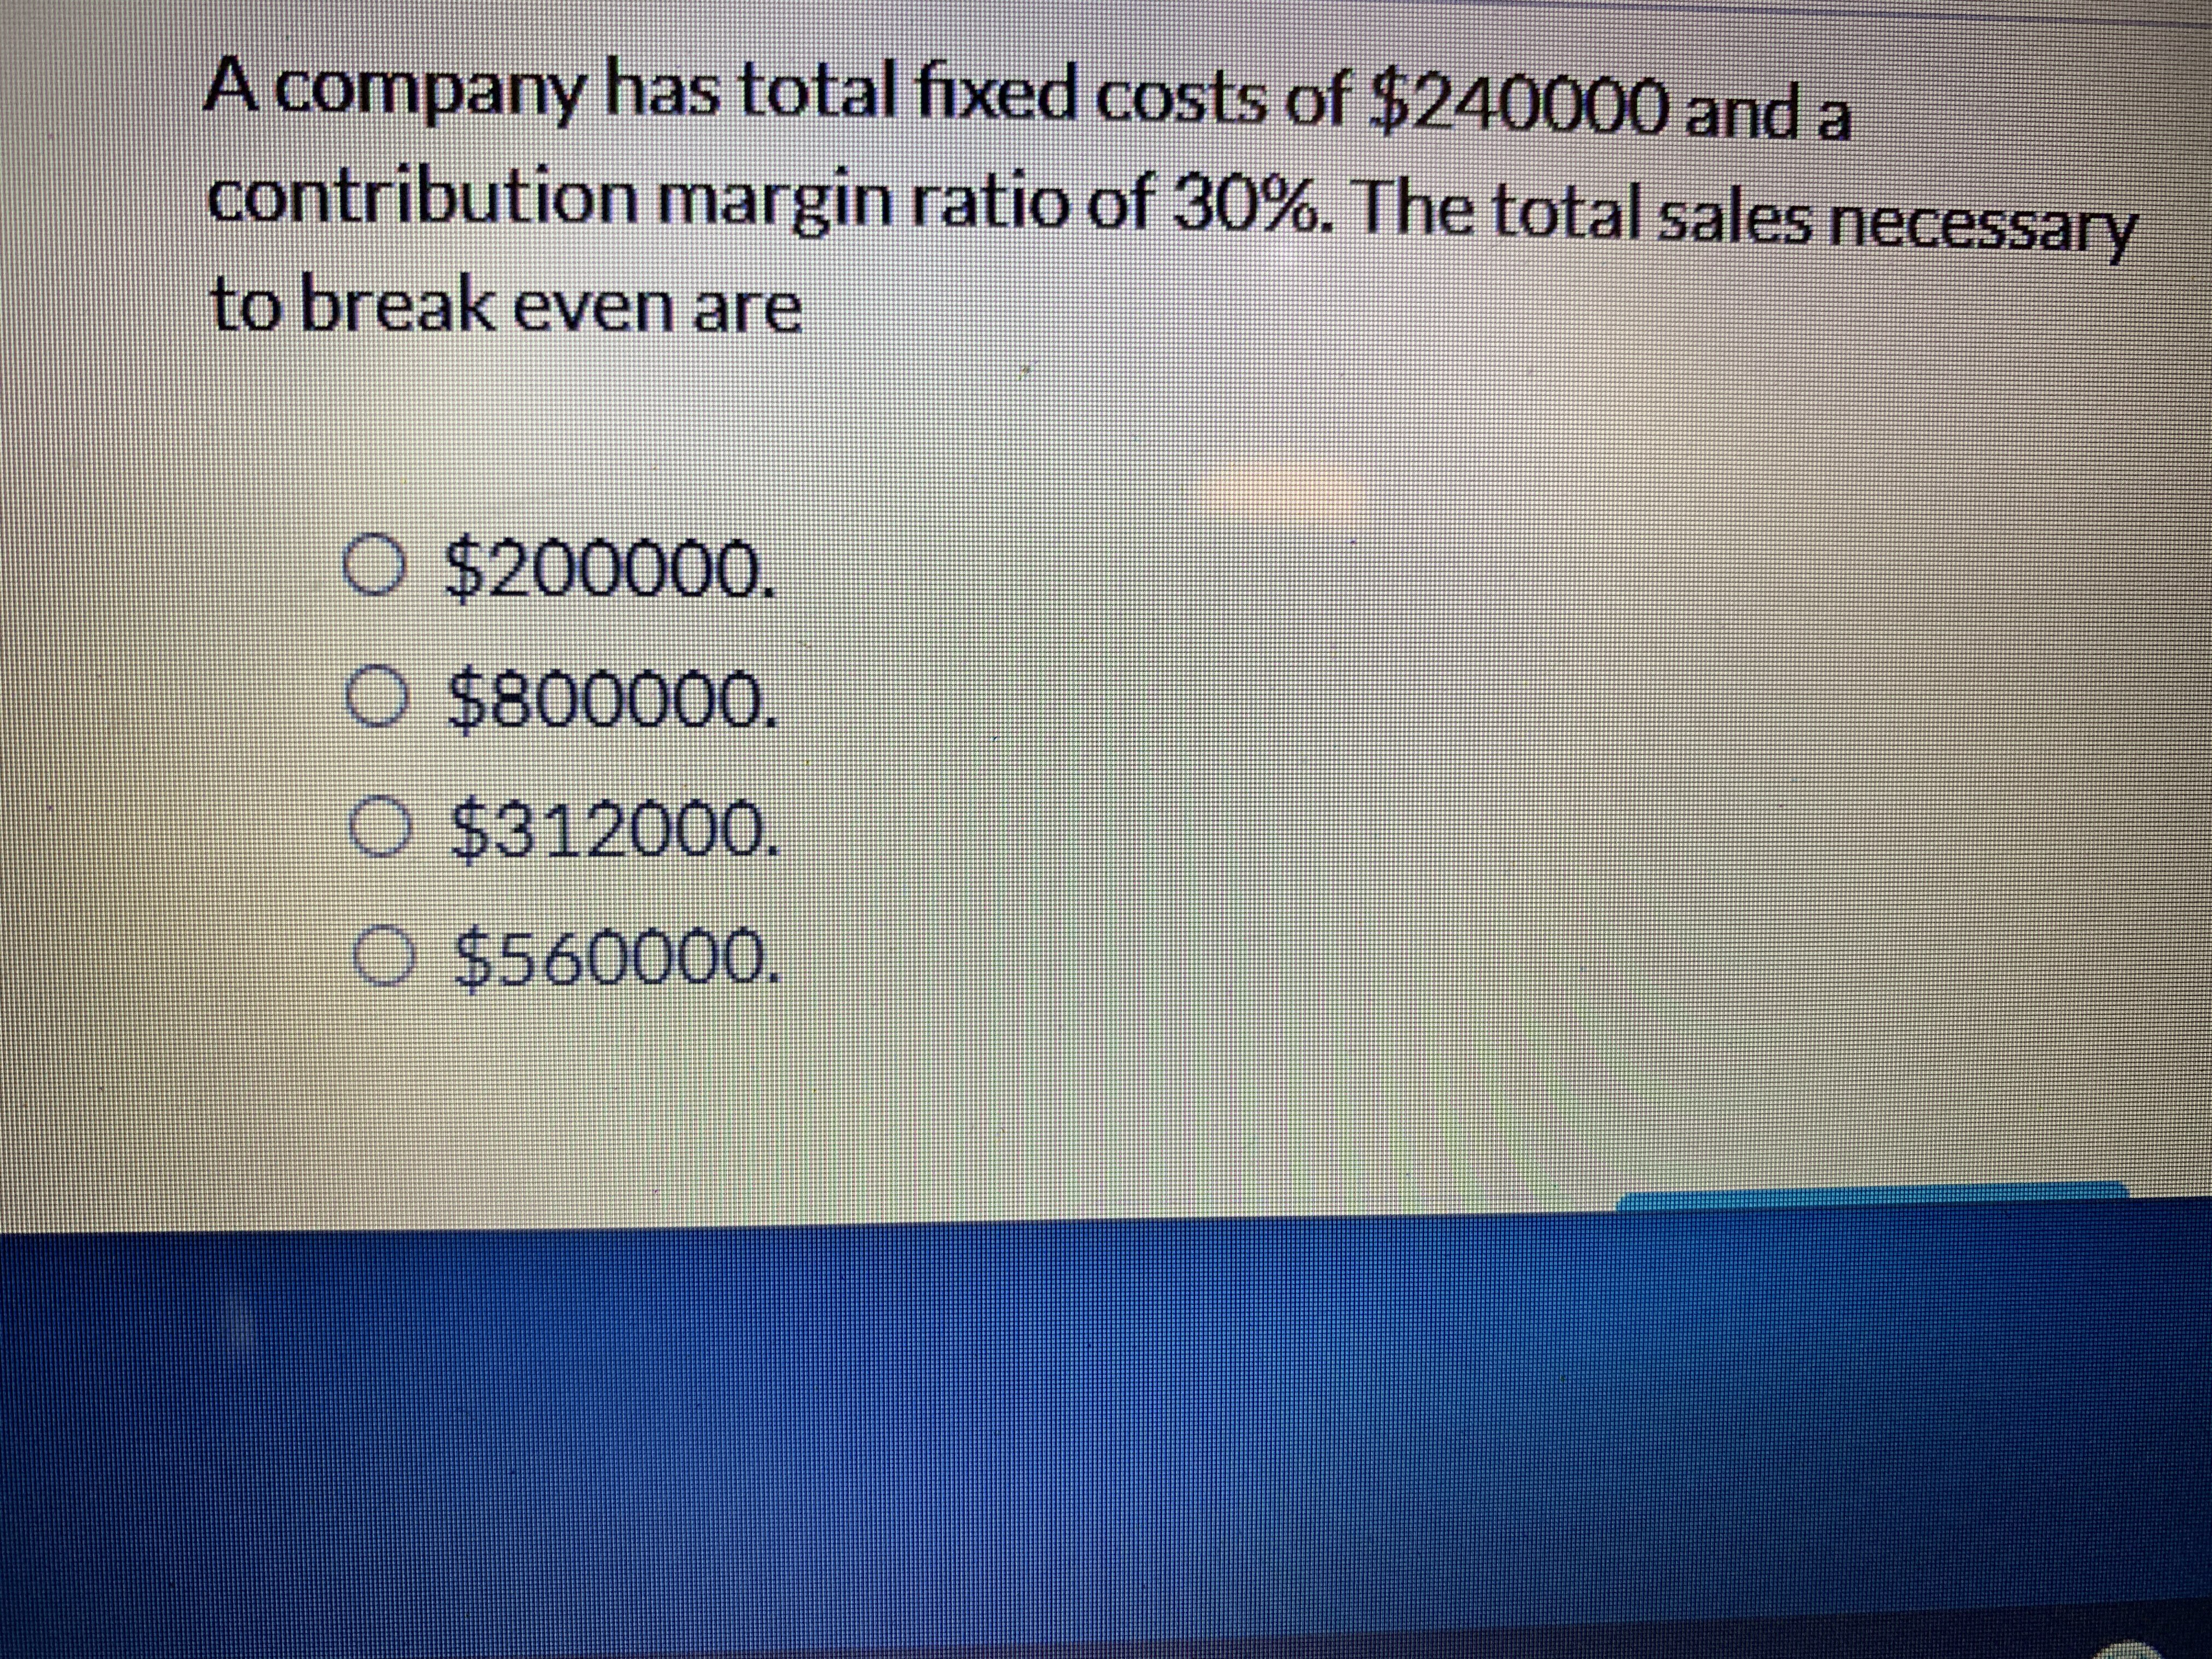 A company has total fixed costs of $240000 and a contribution margin ratio of 30%. The total sales necessary to break even are O $200000. O $800000. O $312000. O $560000.